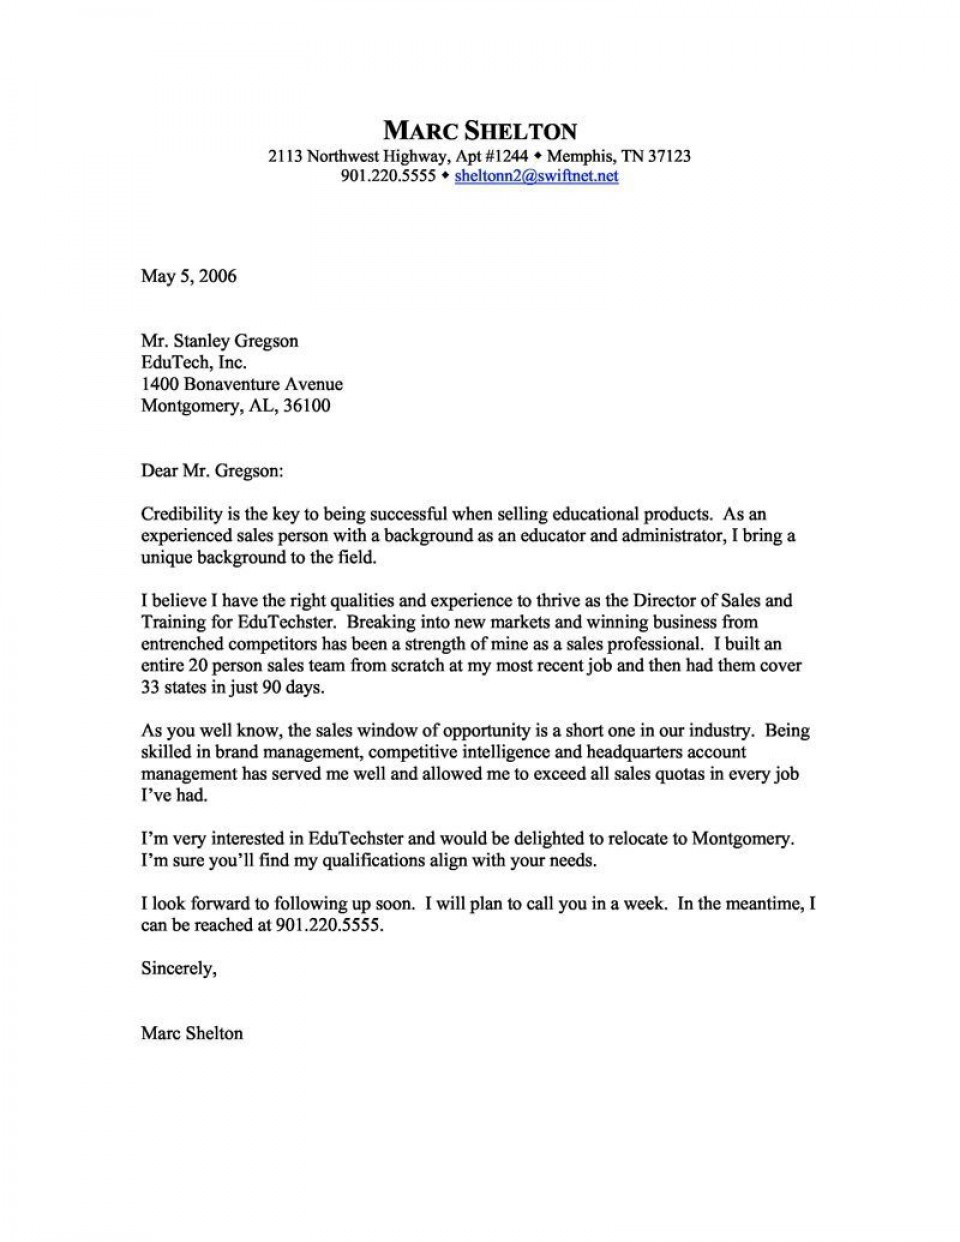 006 Awesome Sale Cover Letter Template Highest Clarity  Account Manager Word Rep960